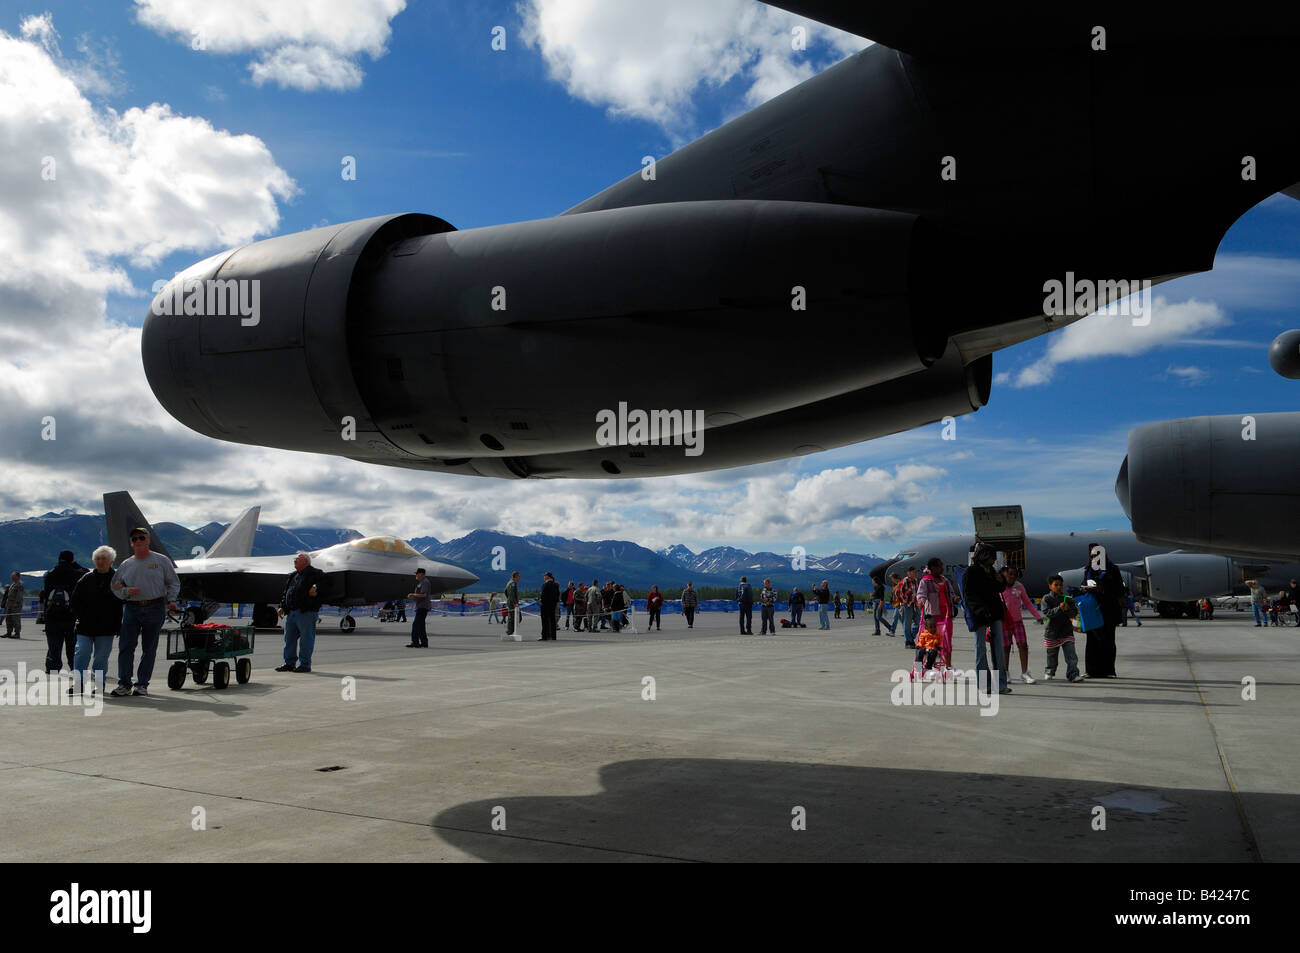 Twin jet engines pod of bomber Boeing B-52 during air show,  Elmendorf Air Force Base, Anchorage, Alaska, USA - Stock Image